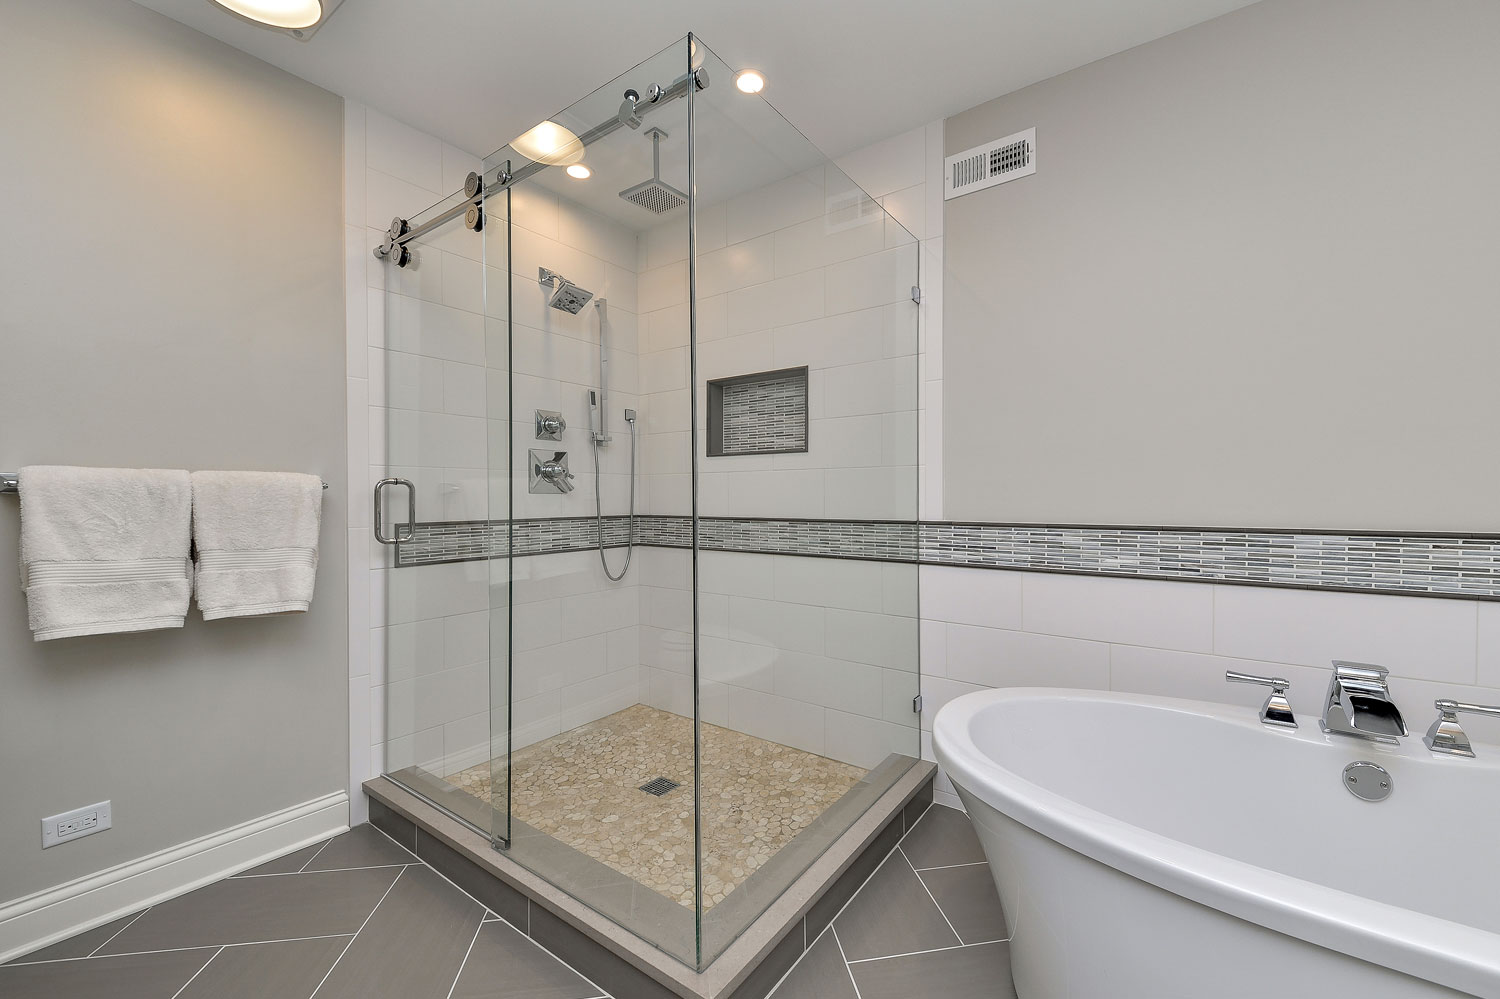 Greg julie 39 s master bathroom remodel pictures home - Small bathroom remodel with tub ...